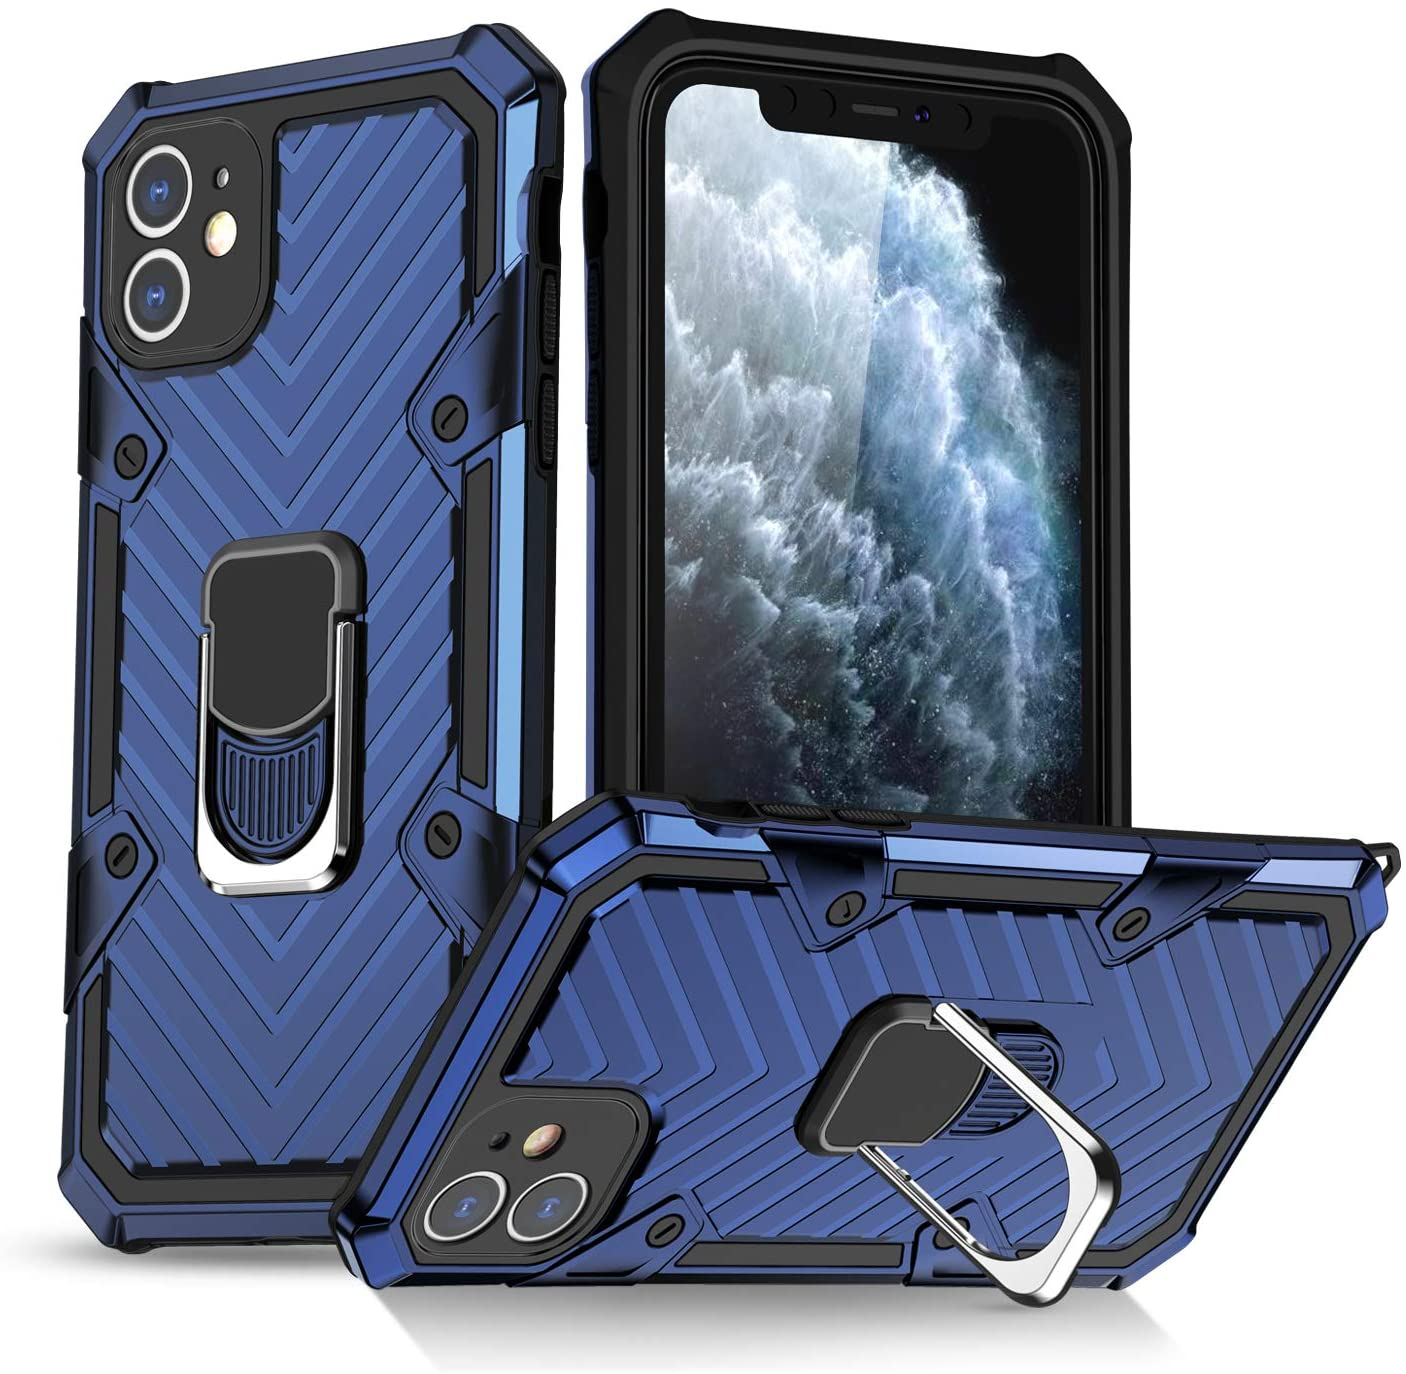 FRIX Lightning Armor Phone Case | for iPhone 11 | Car Magnetic Plate | Blue